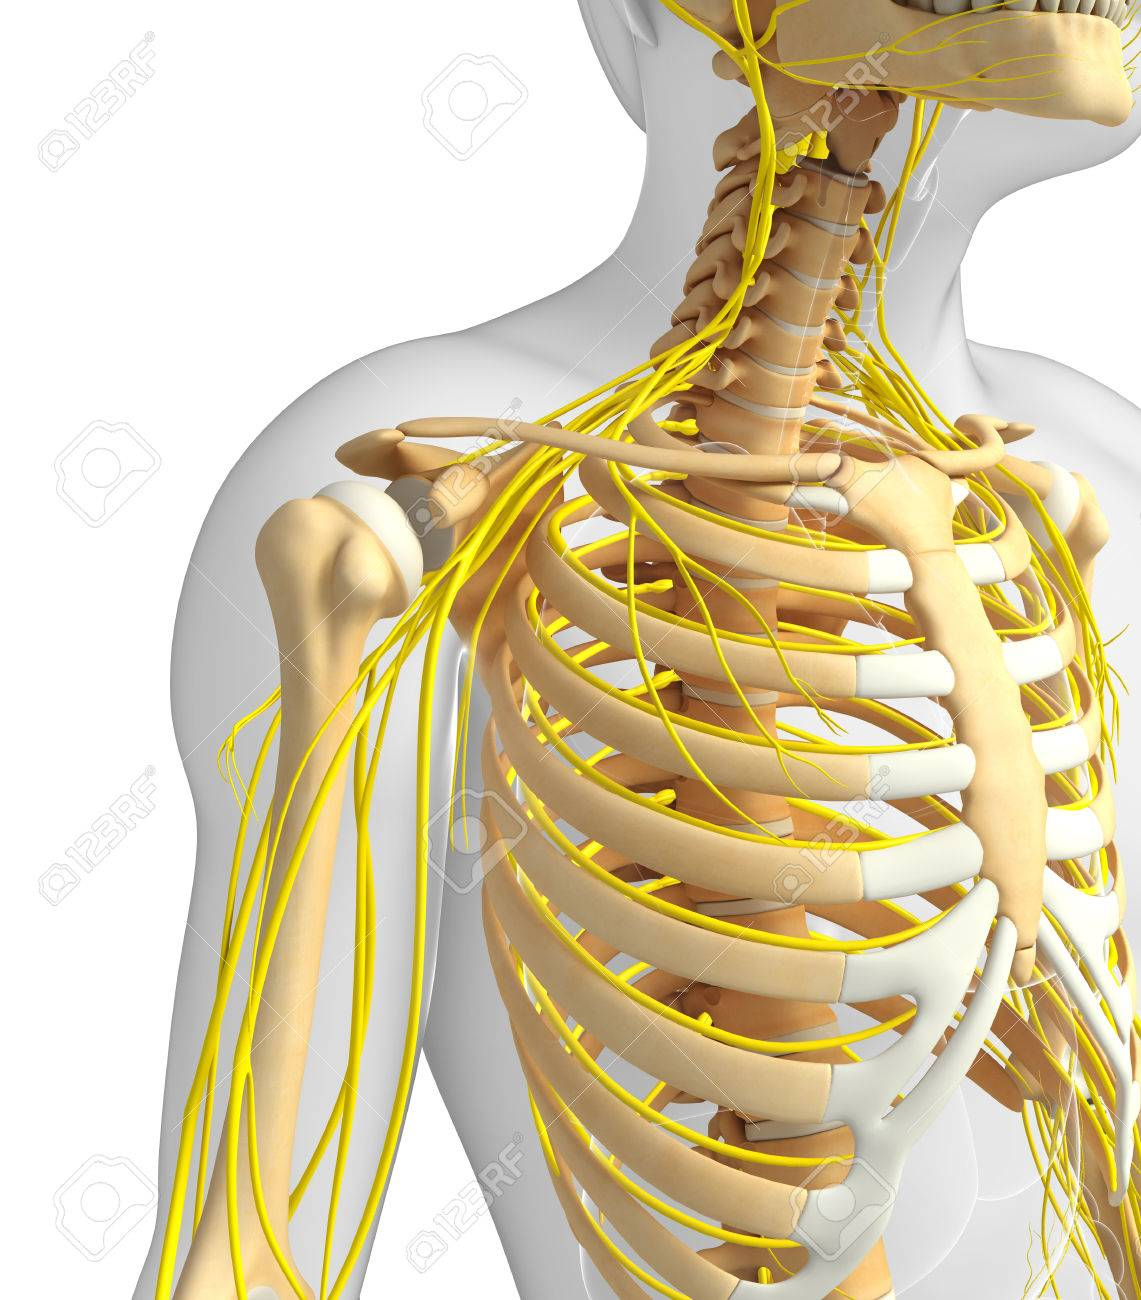 Illustration Of Male Ribcage With Nervous System Artwork Stock Photo